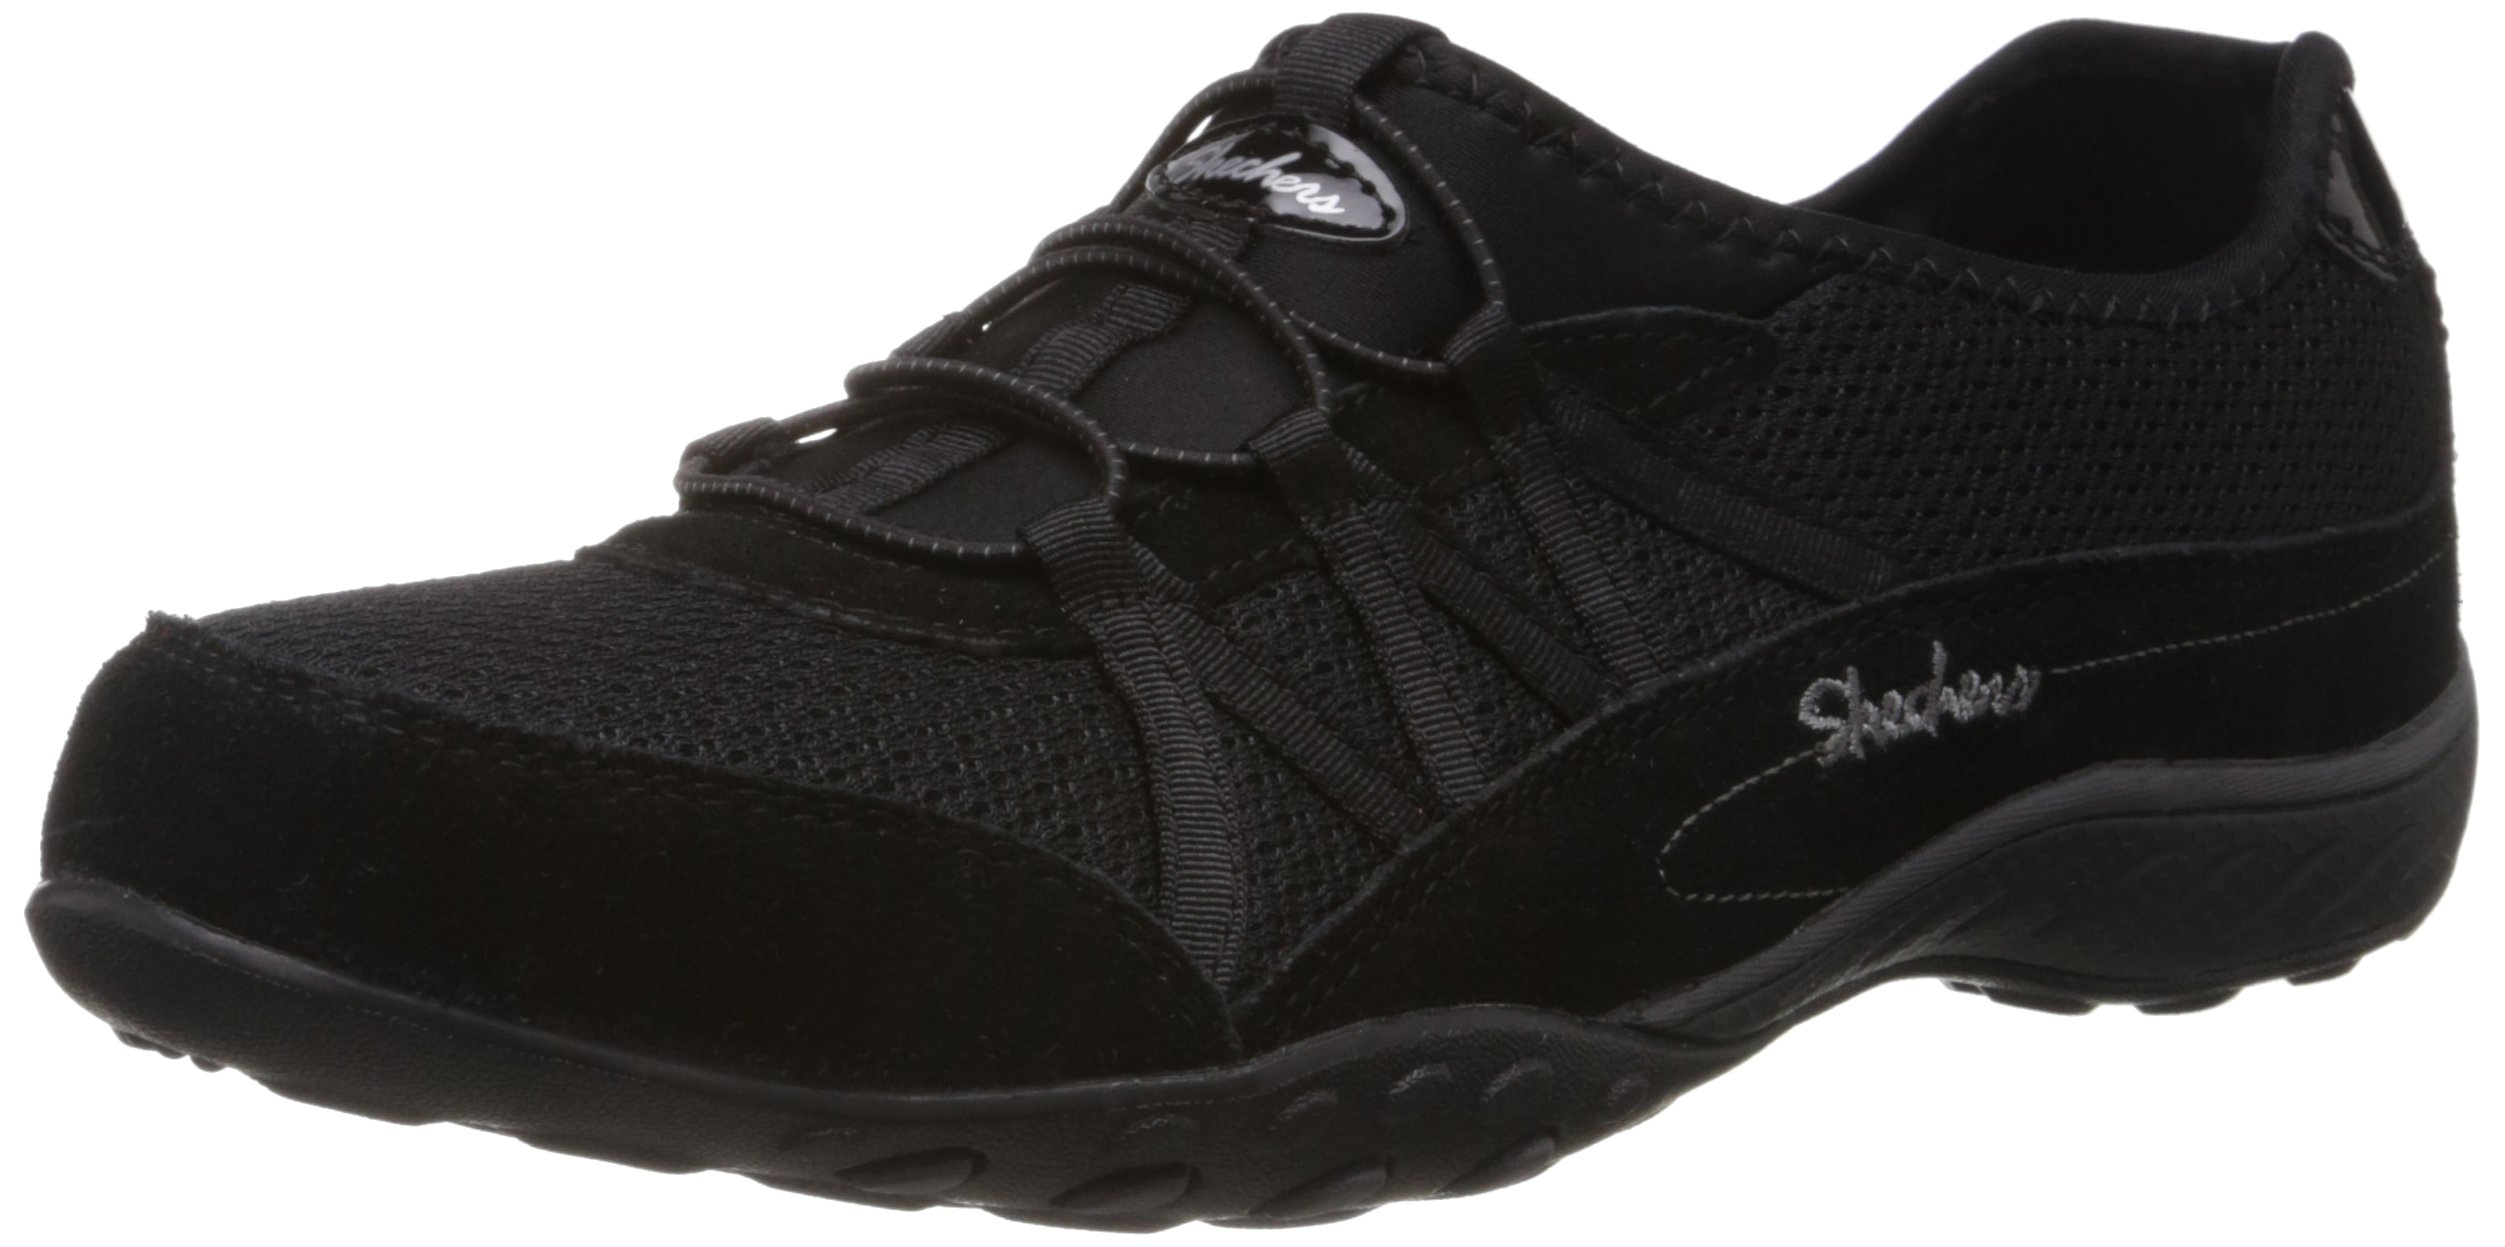 Skechers USA Women's Relaxation Fashion Sneaker